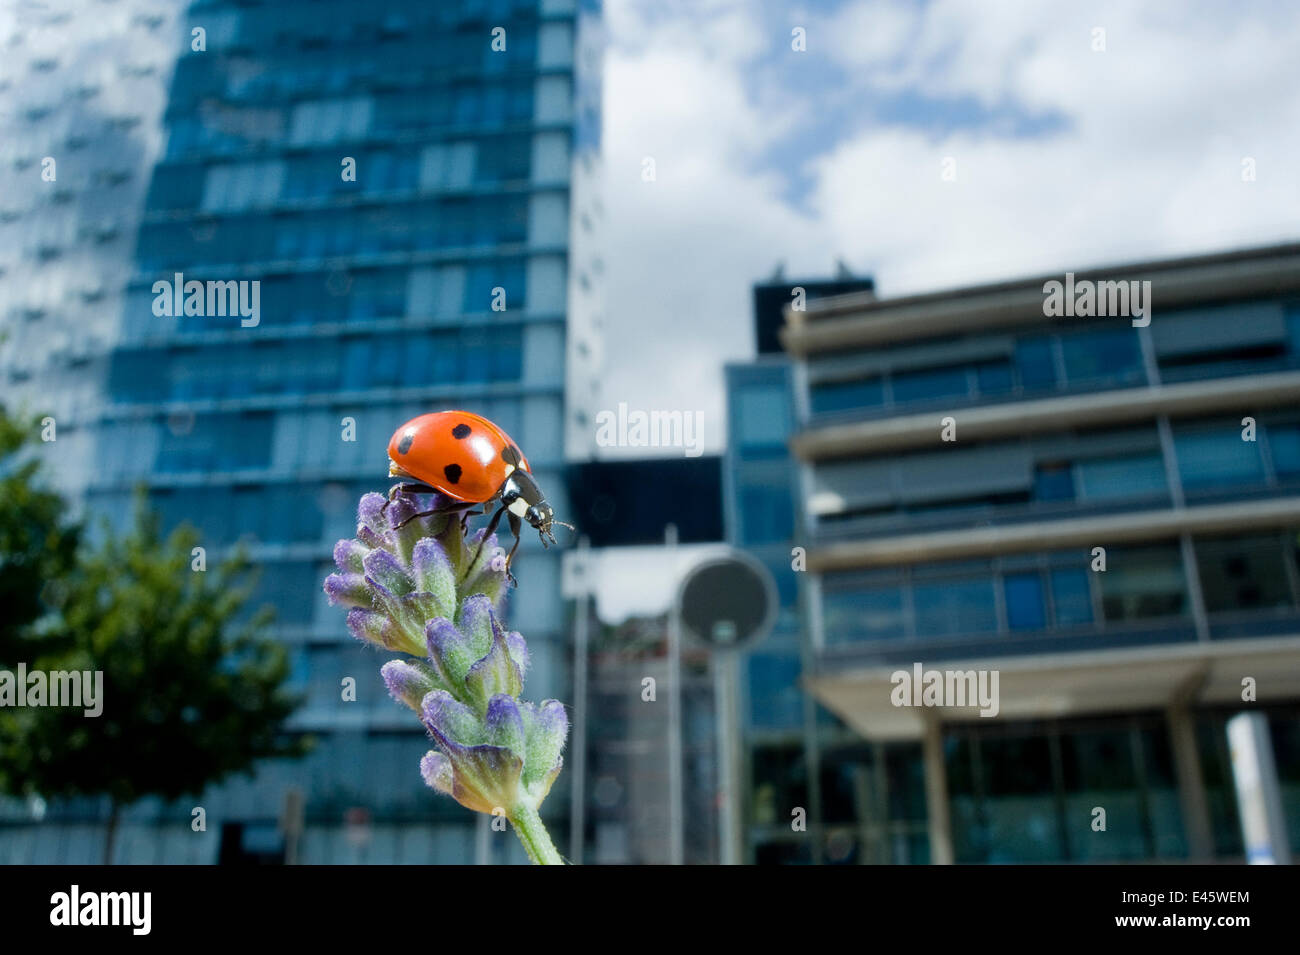 Seven-spot ladybird (Coccinella septempunctata) on a lavender flowerhead in a park, with buildings behind. Neuchatel, - Stock Image